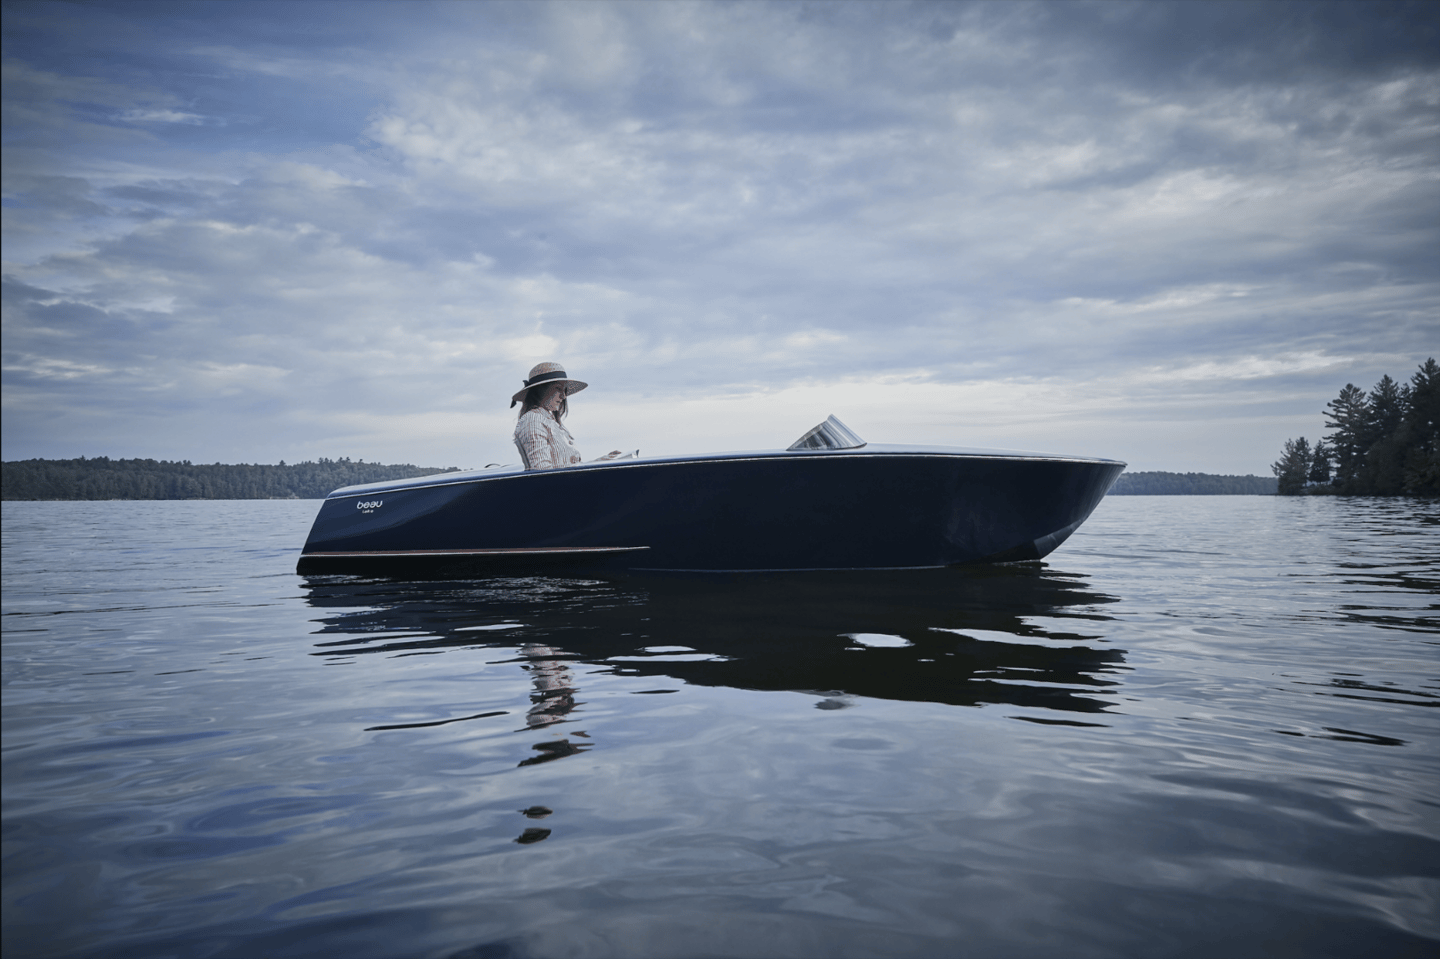 The Beau Lake Runabout promises simple elegance from a simpler time